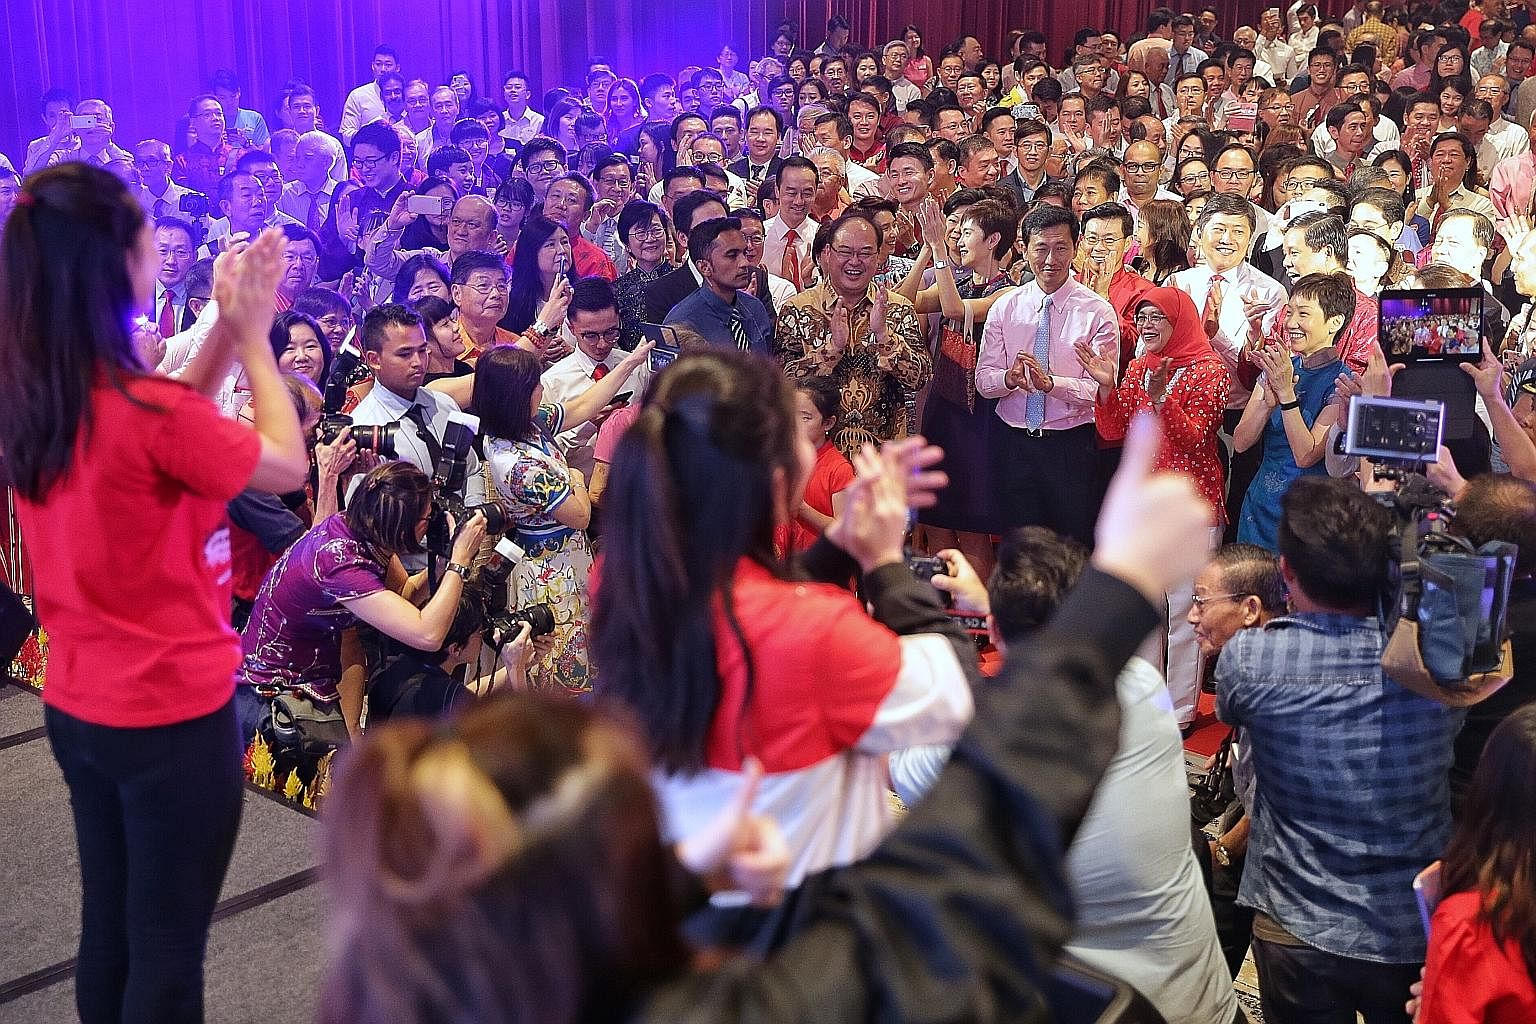 President Halimah Yacob and about 1,000 guests at the Singapore Chinese Cultural Centre (SCCC) took part in a mass dance led by performers on stage during the Spring Reception 2019 yesterday. The event was jointly organised by the SCCC and Singapore